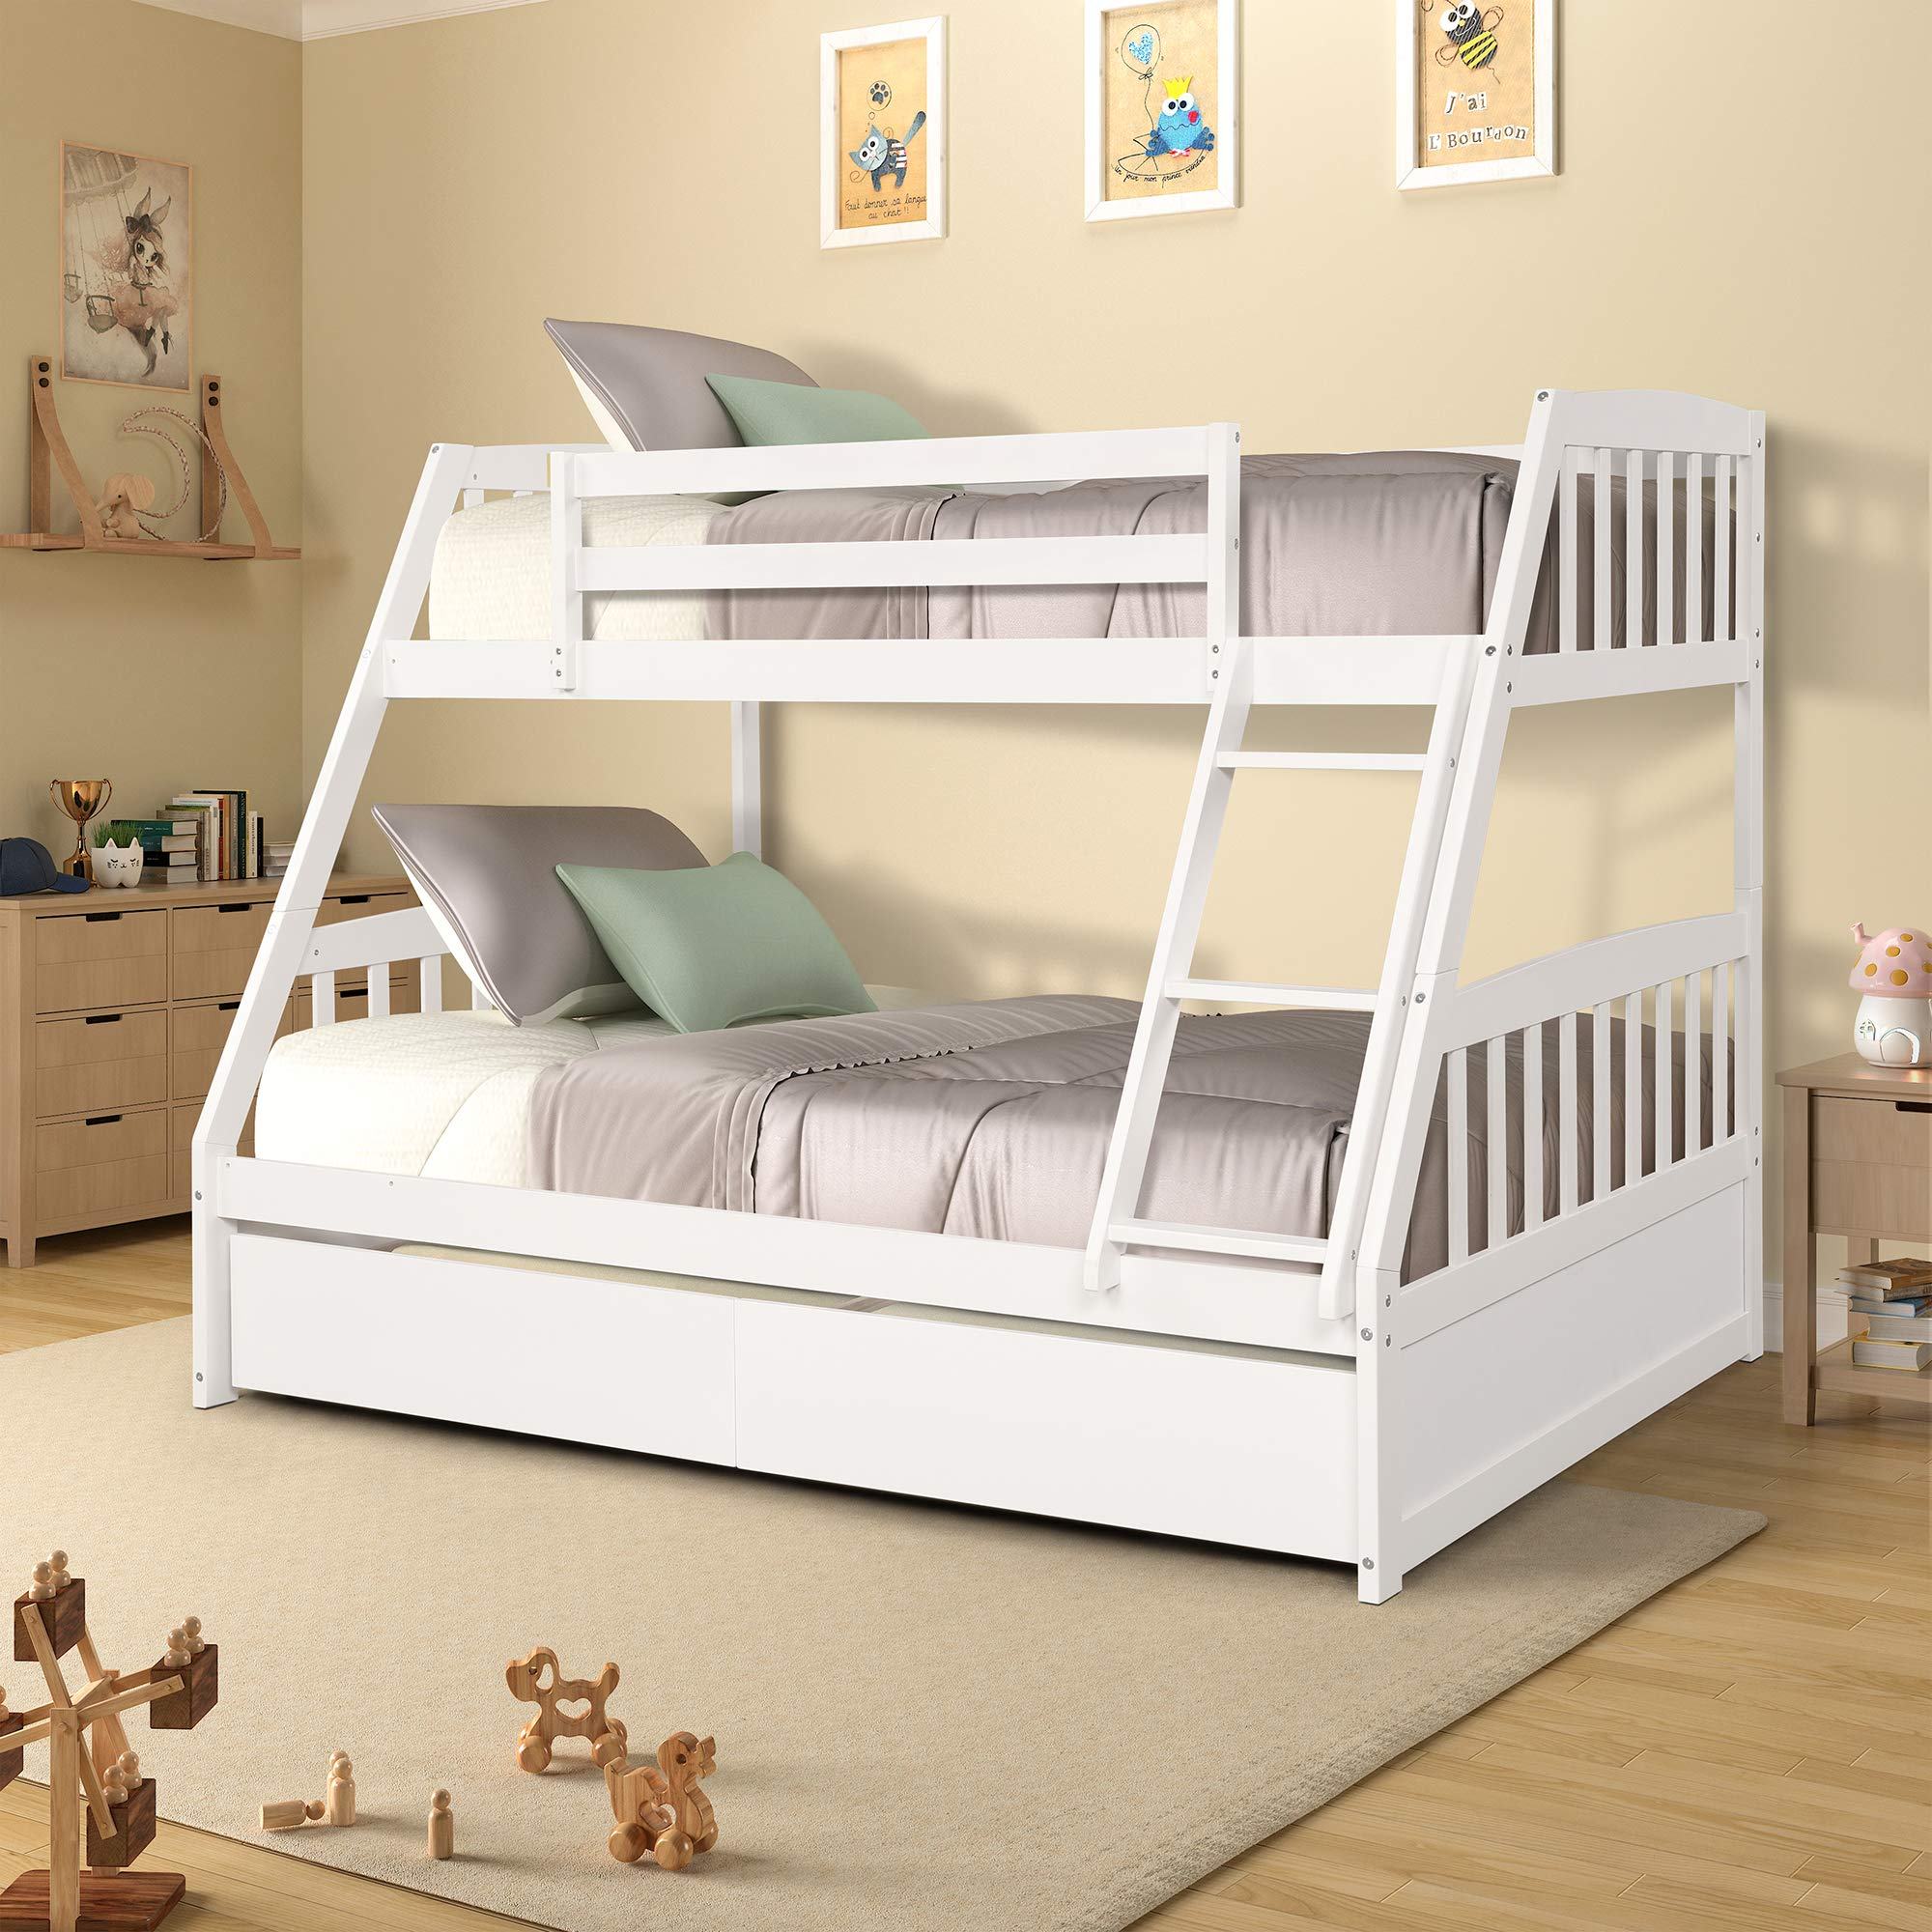 Twin Over Full Bunk Bed With Storage Drawers Weyoung Solid Wood Bunk Bed Frame With 2 Raised Panel Bed Drawers Separate To Twin Full Bed White Buy Online In Andorra At Andorra Desertcart Com Productid